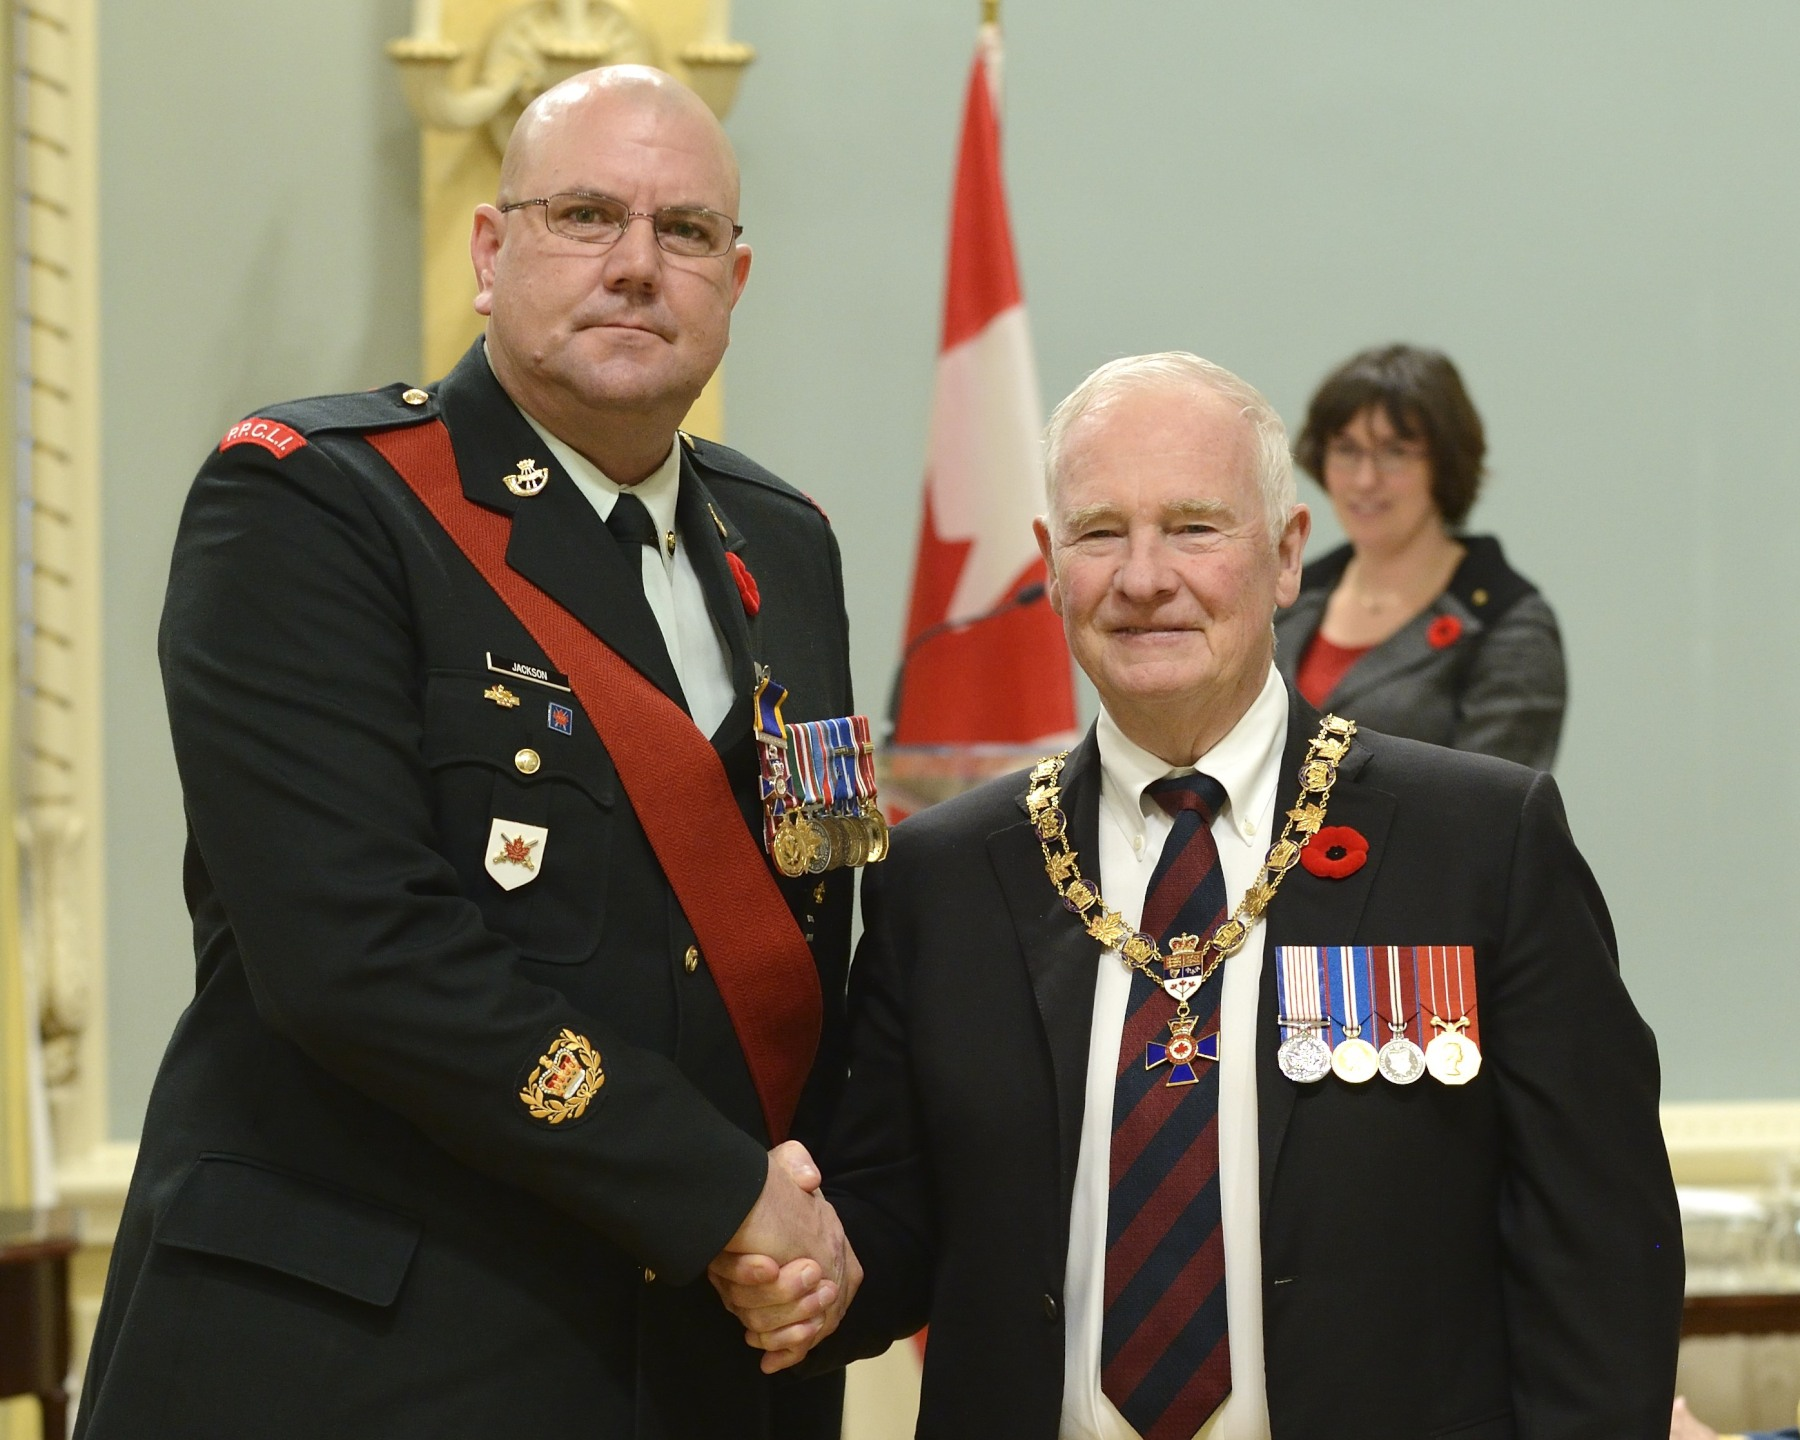 His Excellency presented the Order of Military Merit at the Member level (M.M.M.) to Master Warrant Officer Michael Jackson, M.M.M., M.M.V., C.D., 2nd Battalion, Princess Patricia's Canadian Light Infantry, Shilo, Manitoba.